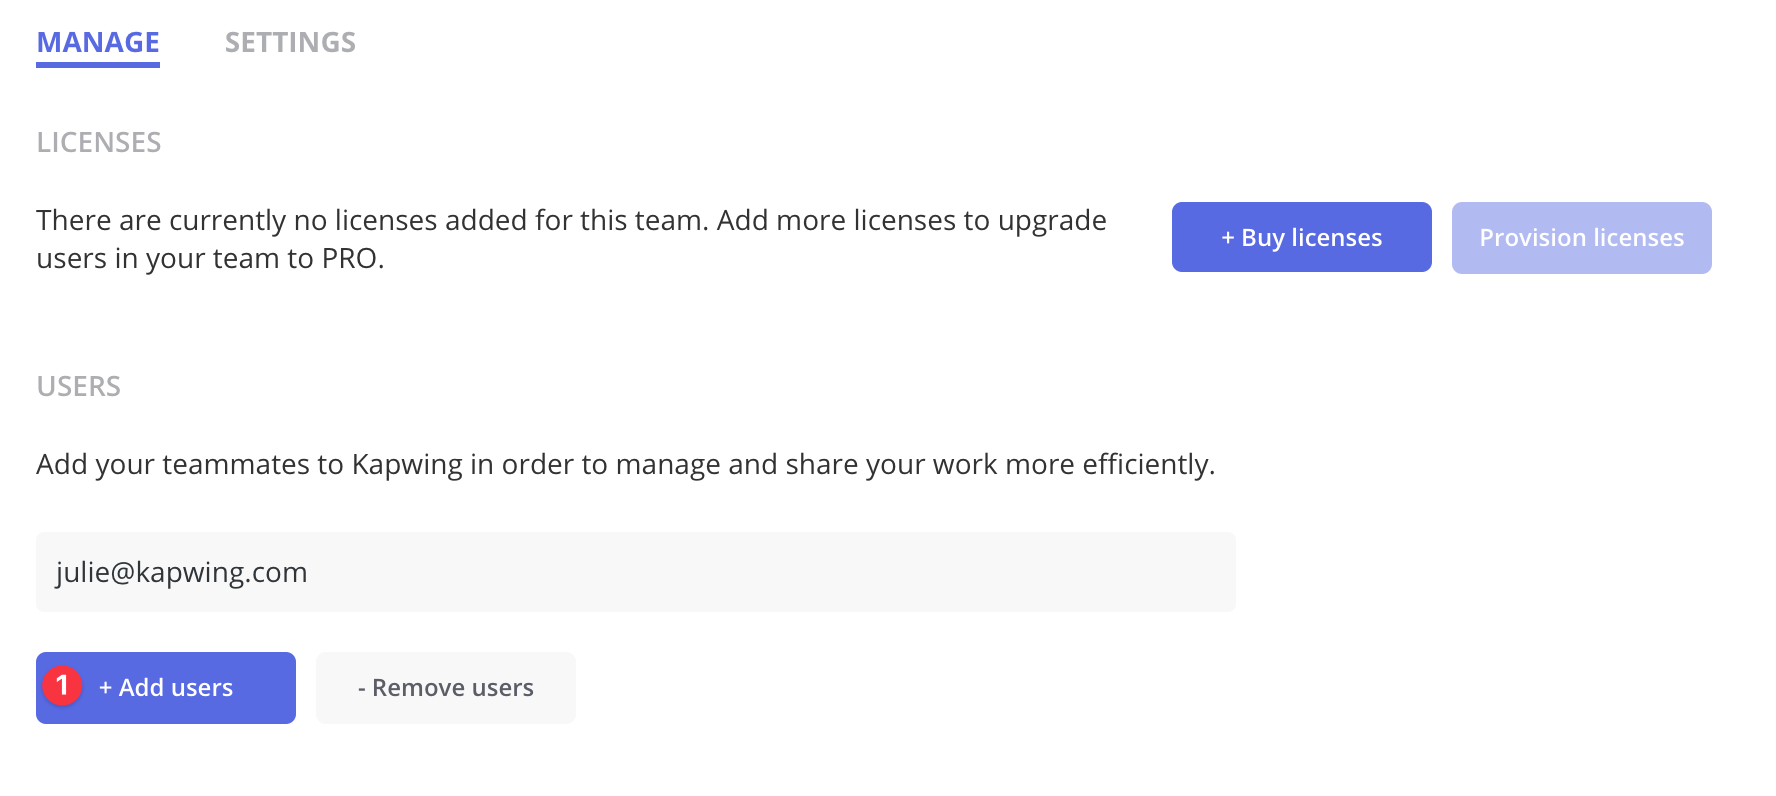 The Team view allows you to Manage the team by adding users, purchasing licenses and updating Team settings.